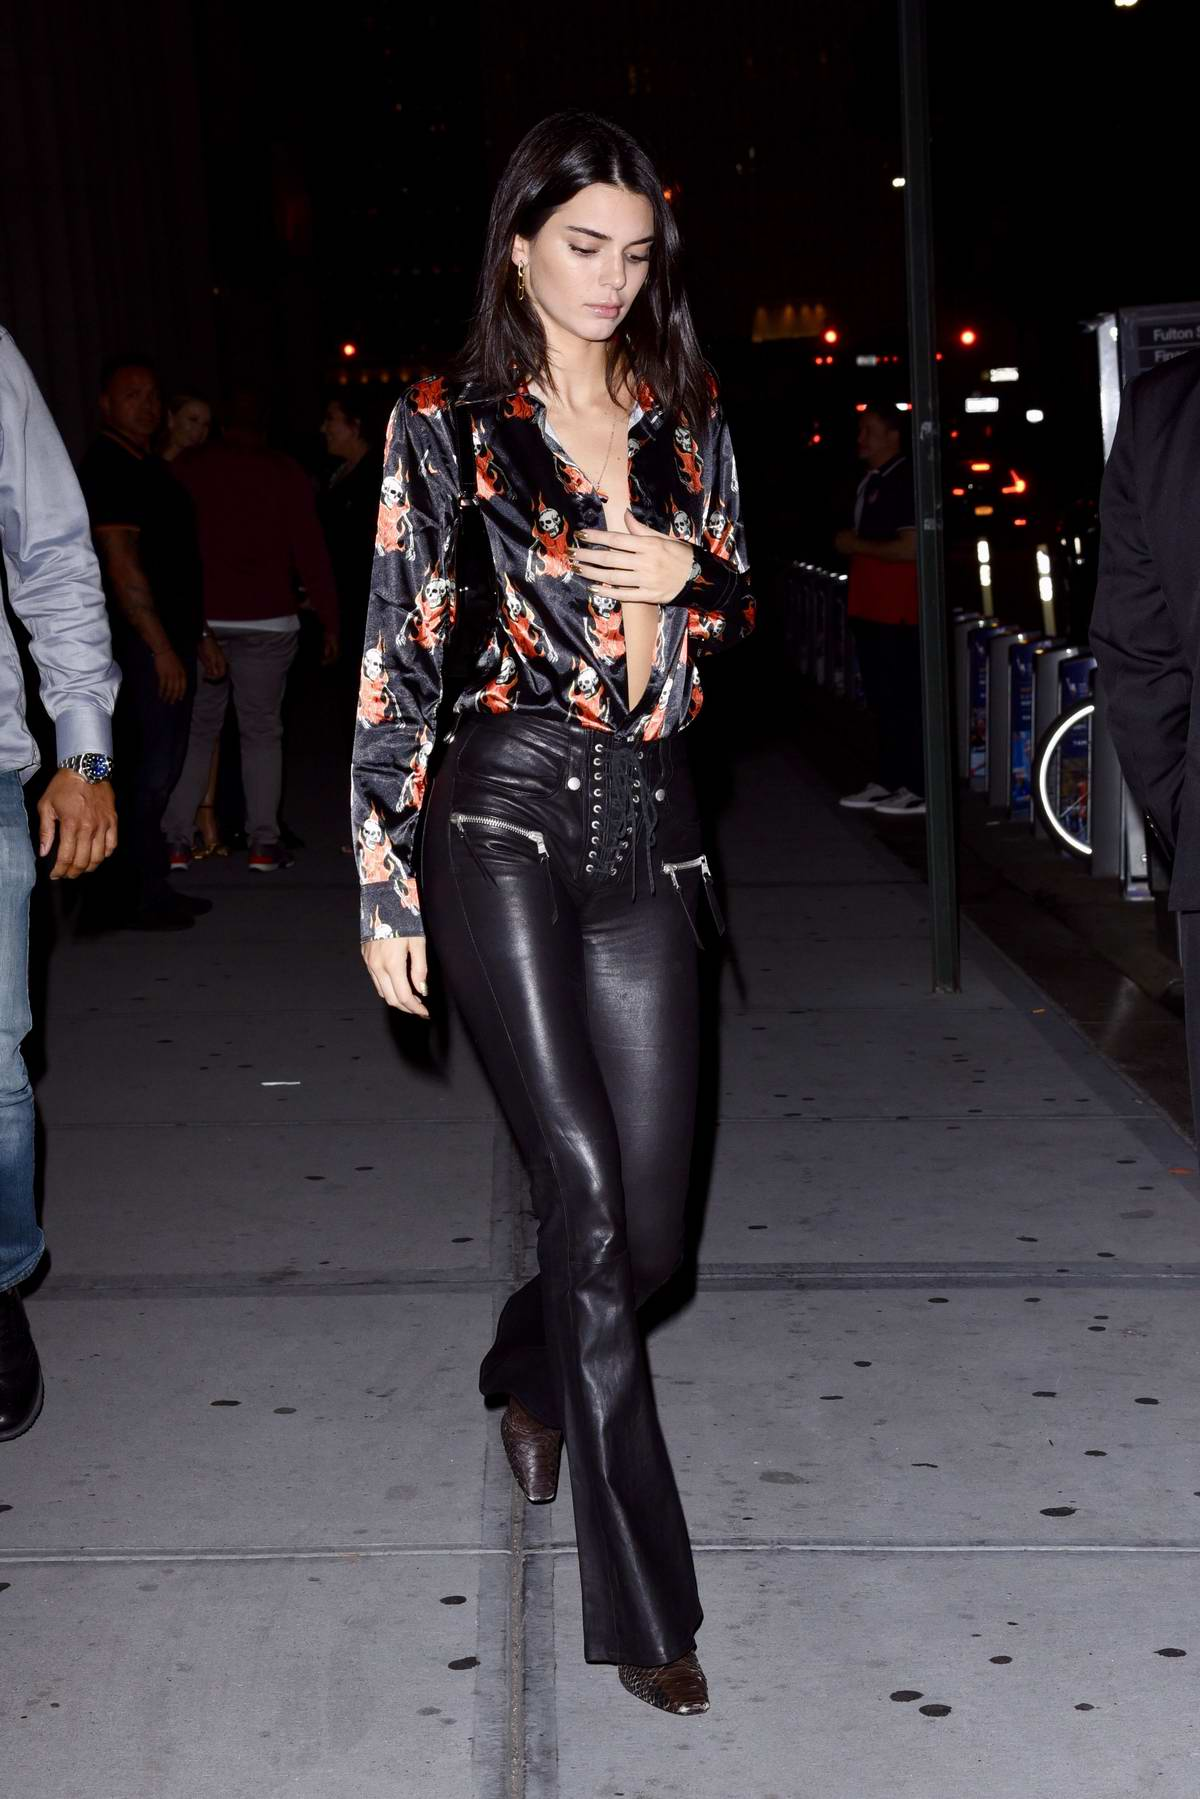 Kendall Jenner wears a patterned black silk shirt and leather pants as she grabs dinner with Kris Jenner at Nobu restaurant in New York City